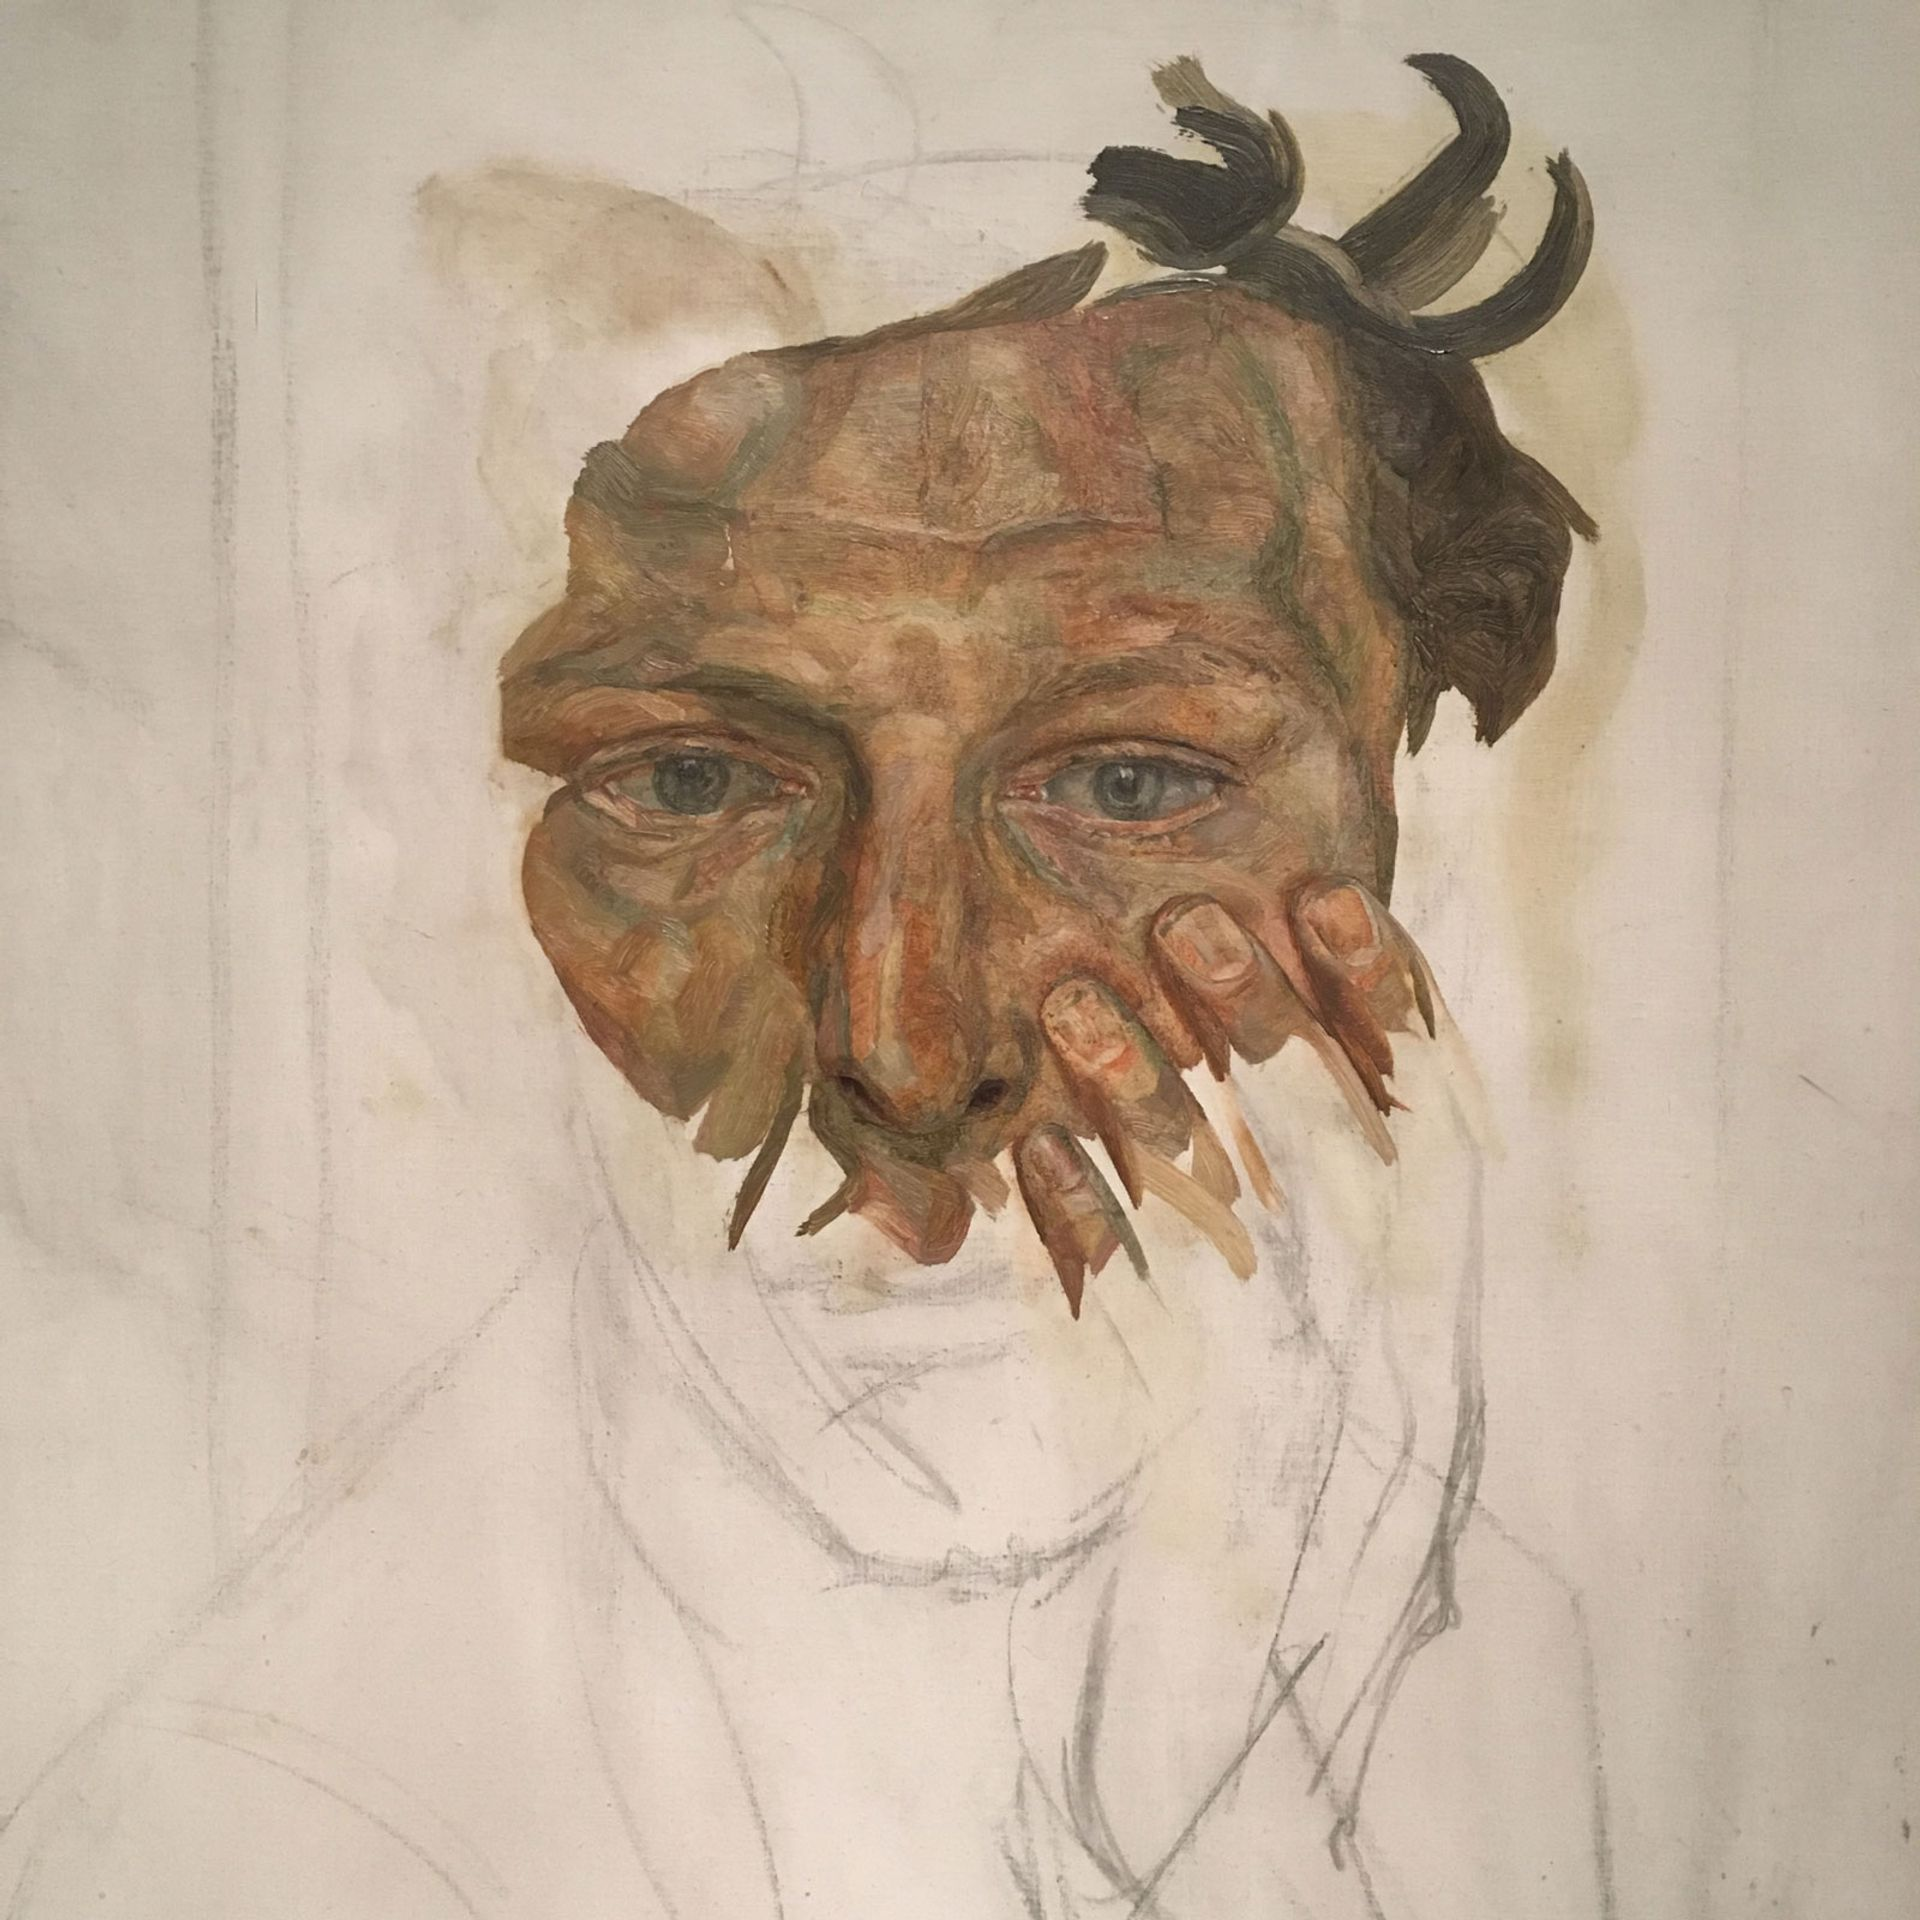 Detail of Lucian Freud's Self-portrait (around 1956)